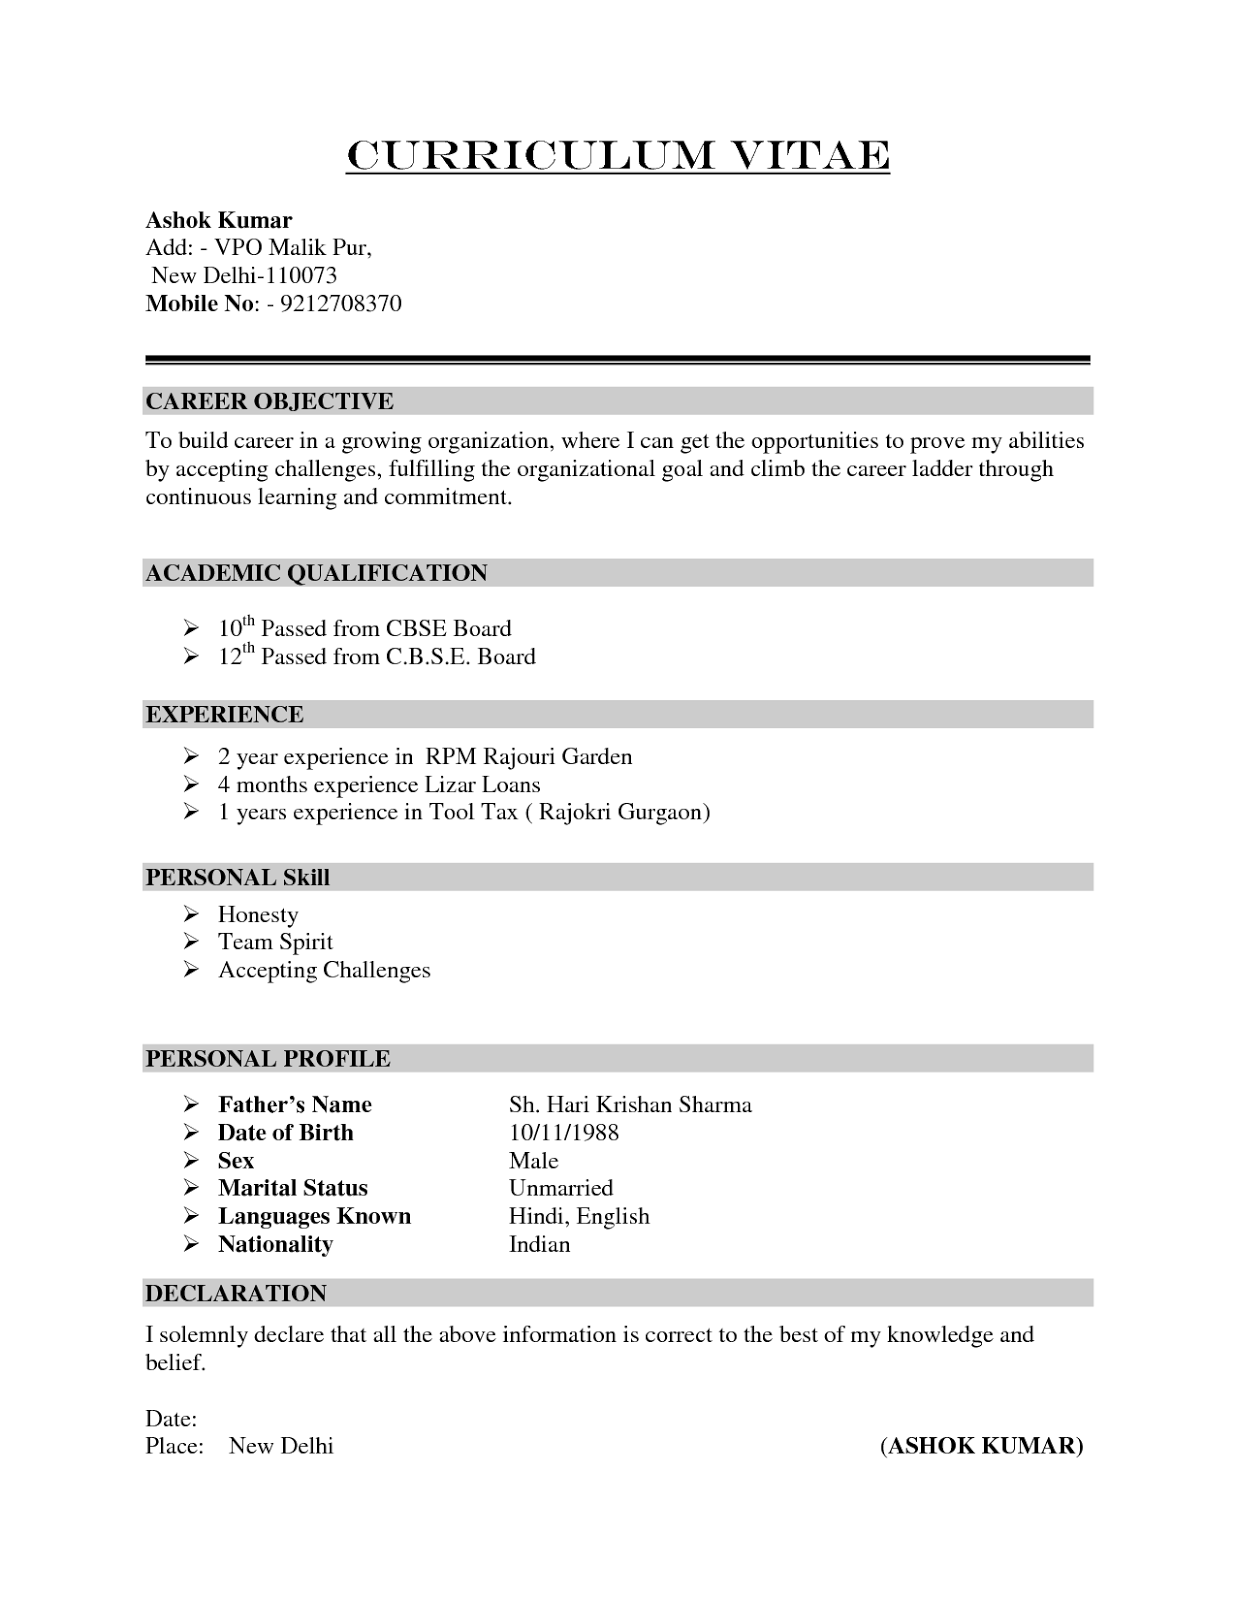 my english pages online  unit 2  curriculum vitae